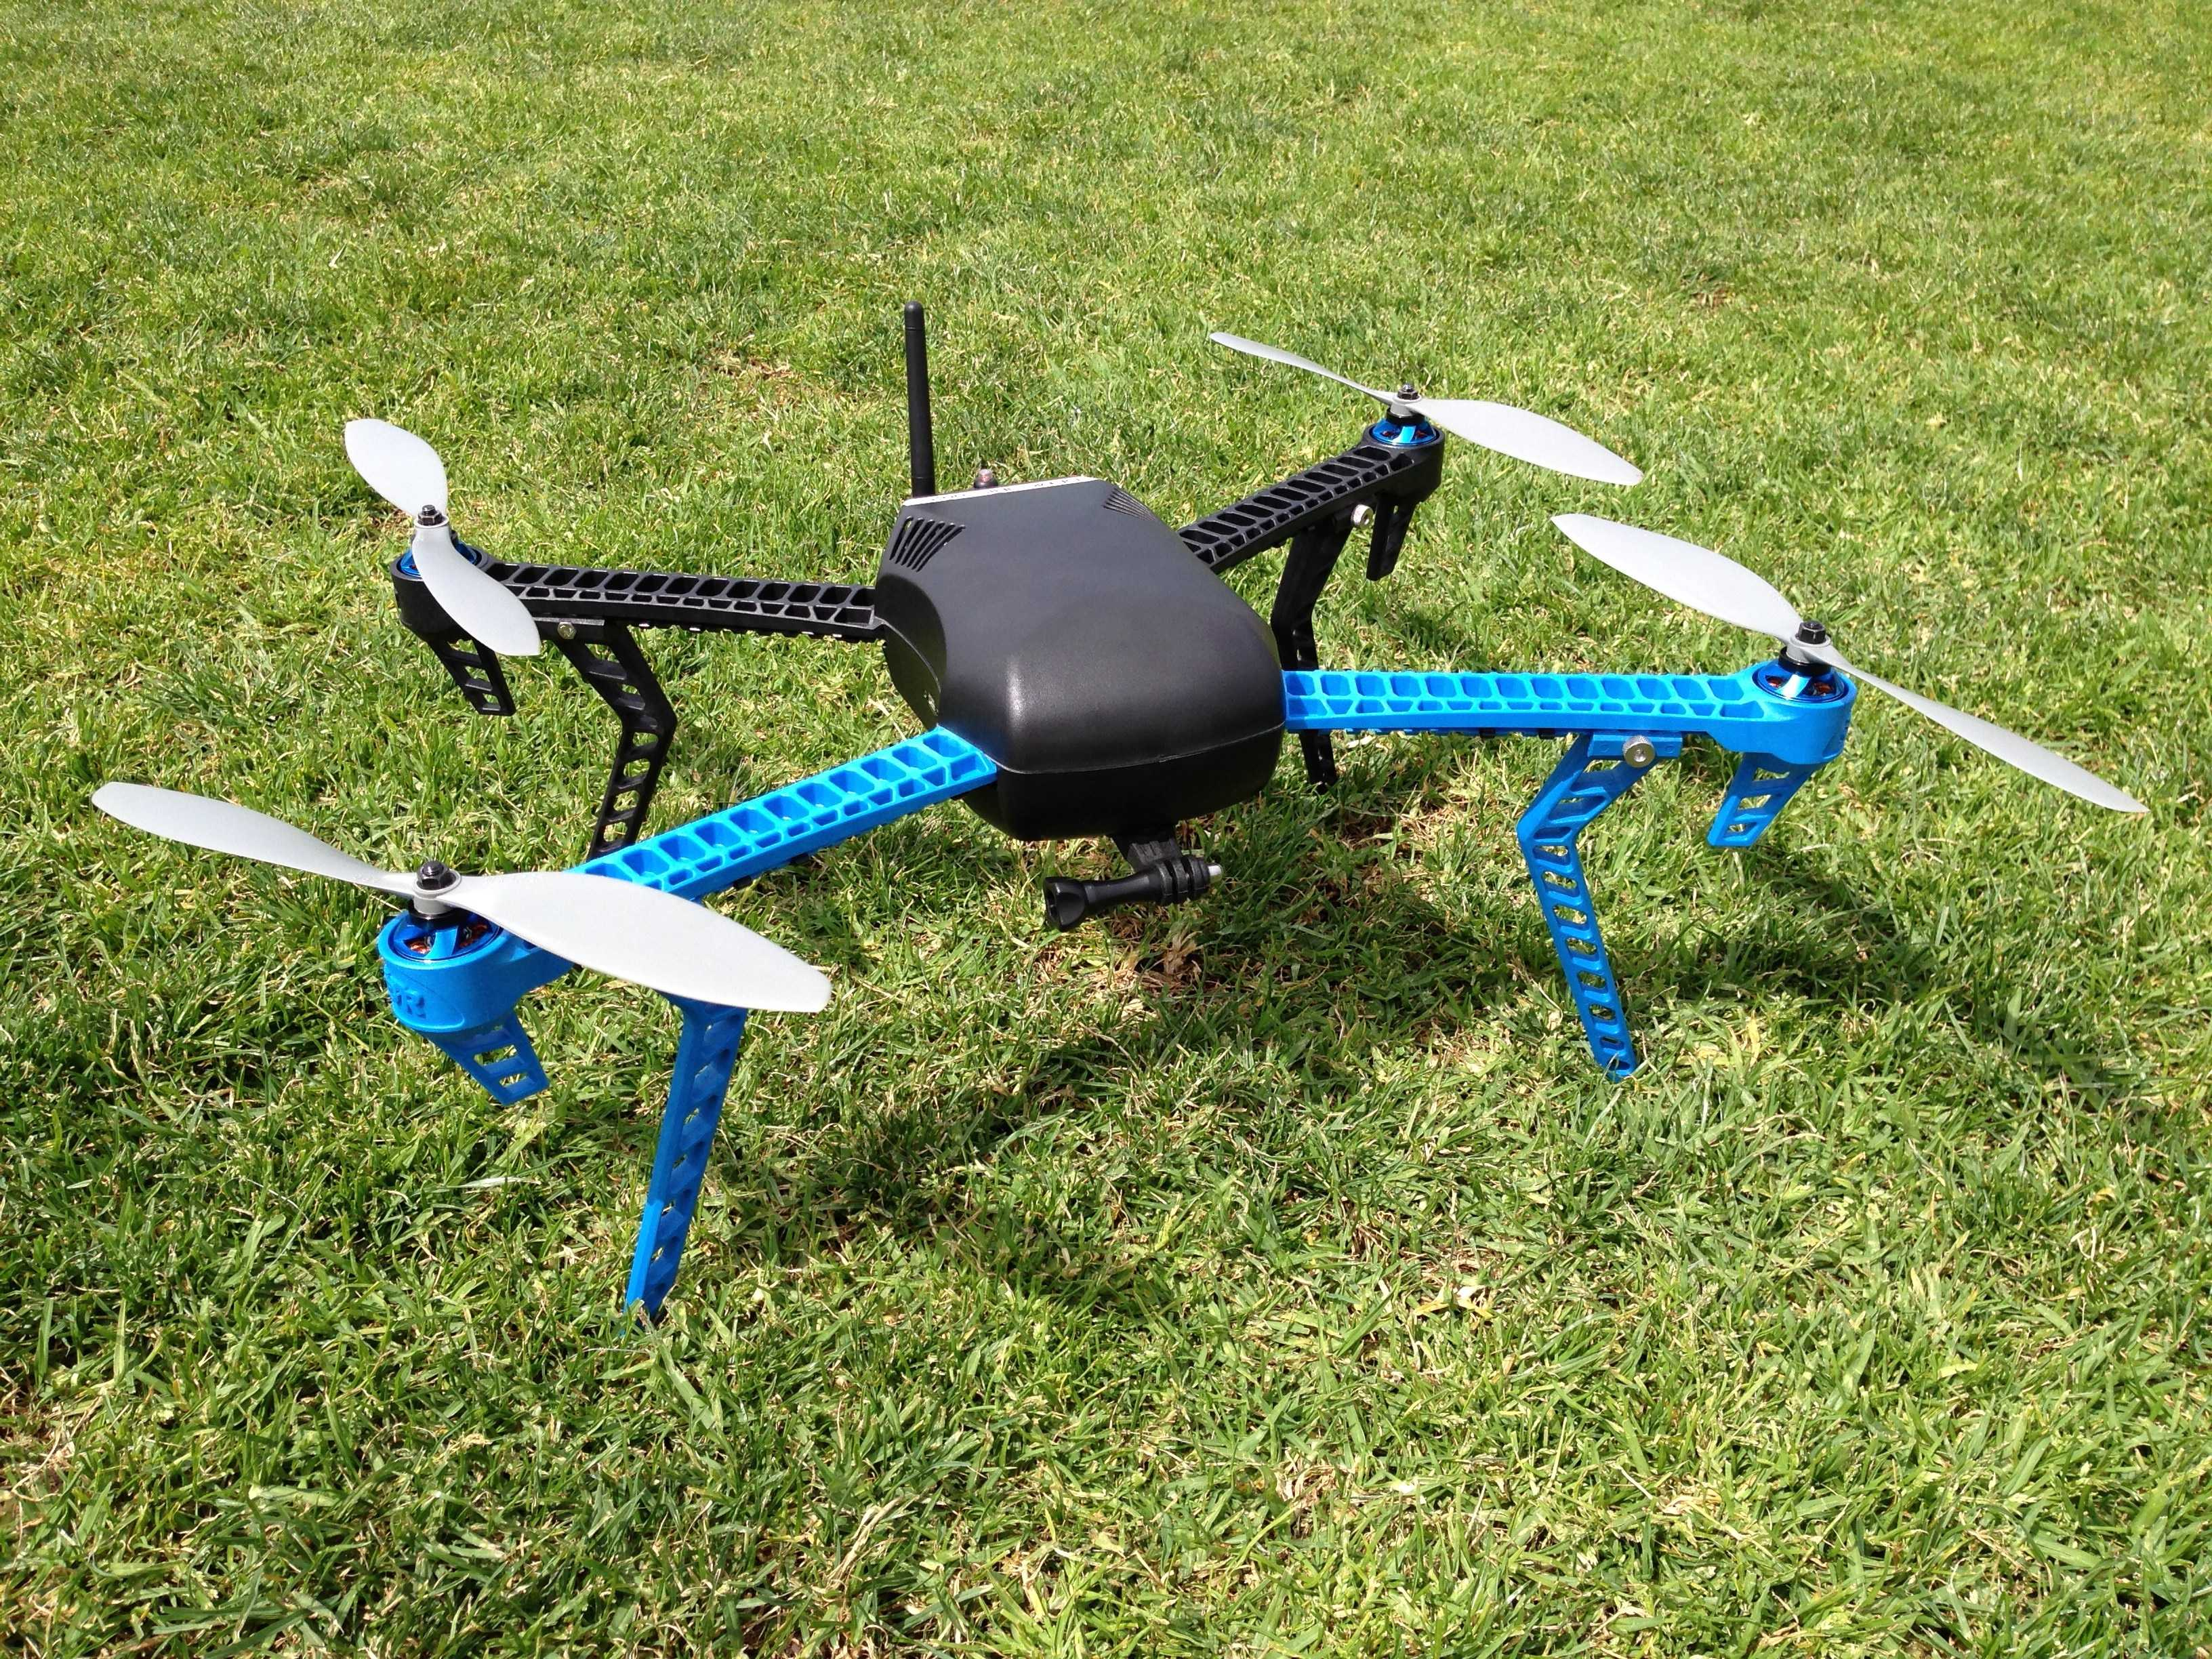 Aztec helps develop waterproof drone